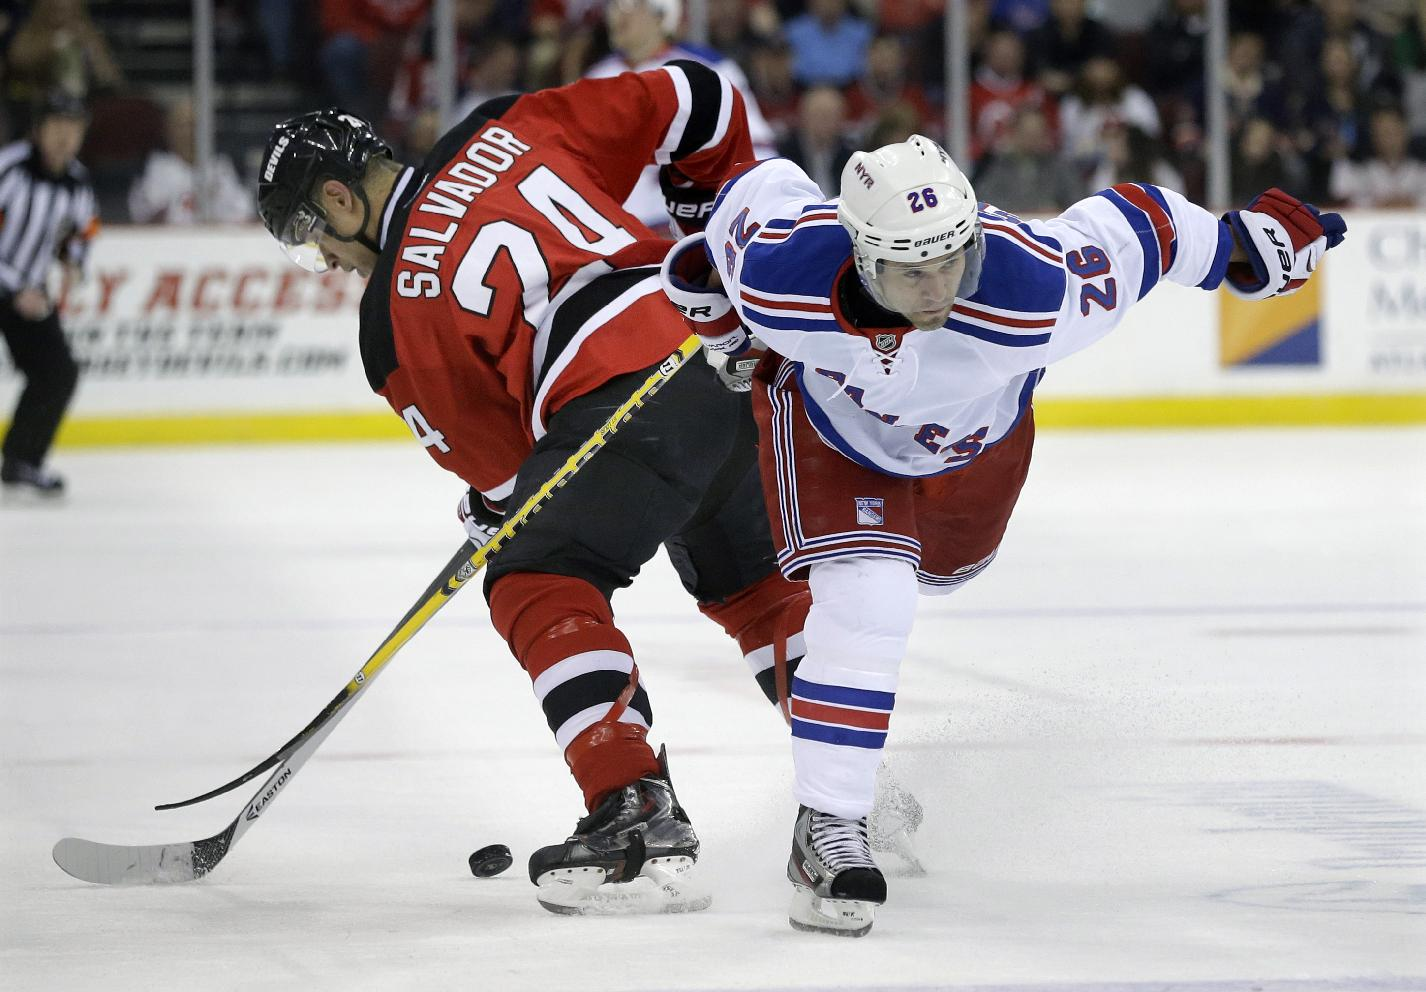 New Jersey Devils' Bryce Salvador (24) gets tied up with New York Rangers' Martin St. Louis (26) during the first period of an NHL hockey game game Saturday, March 22, 2014, in Newark, N.J